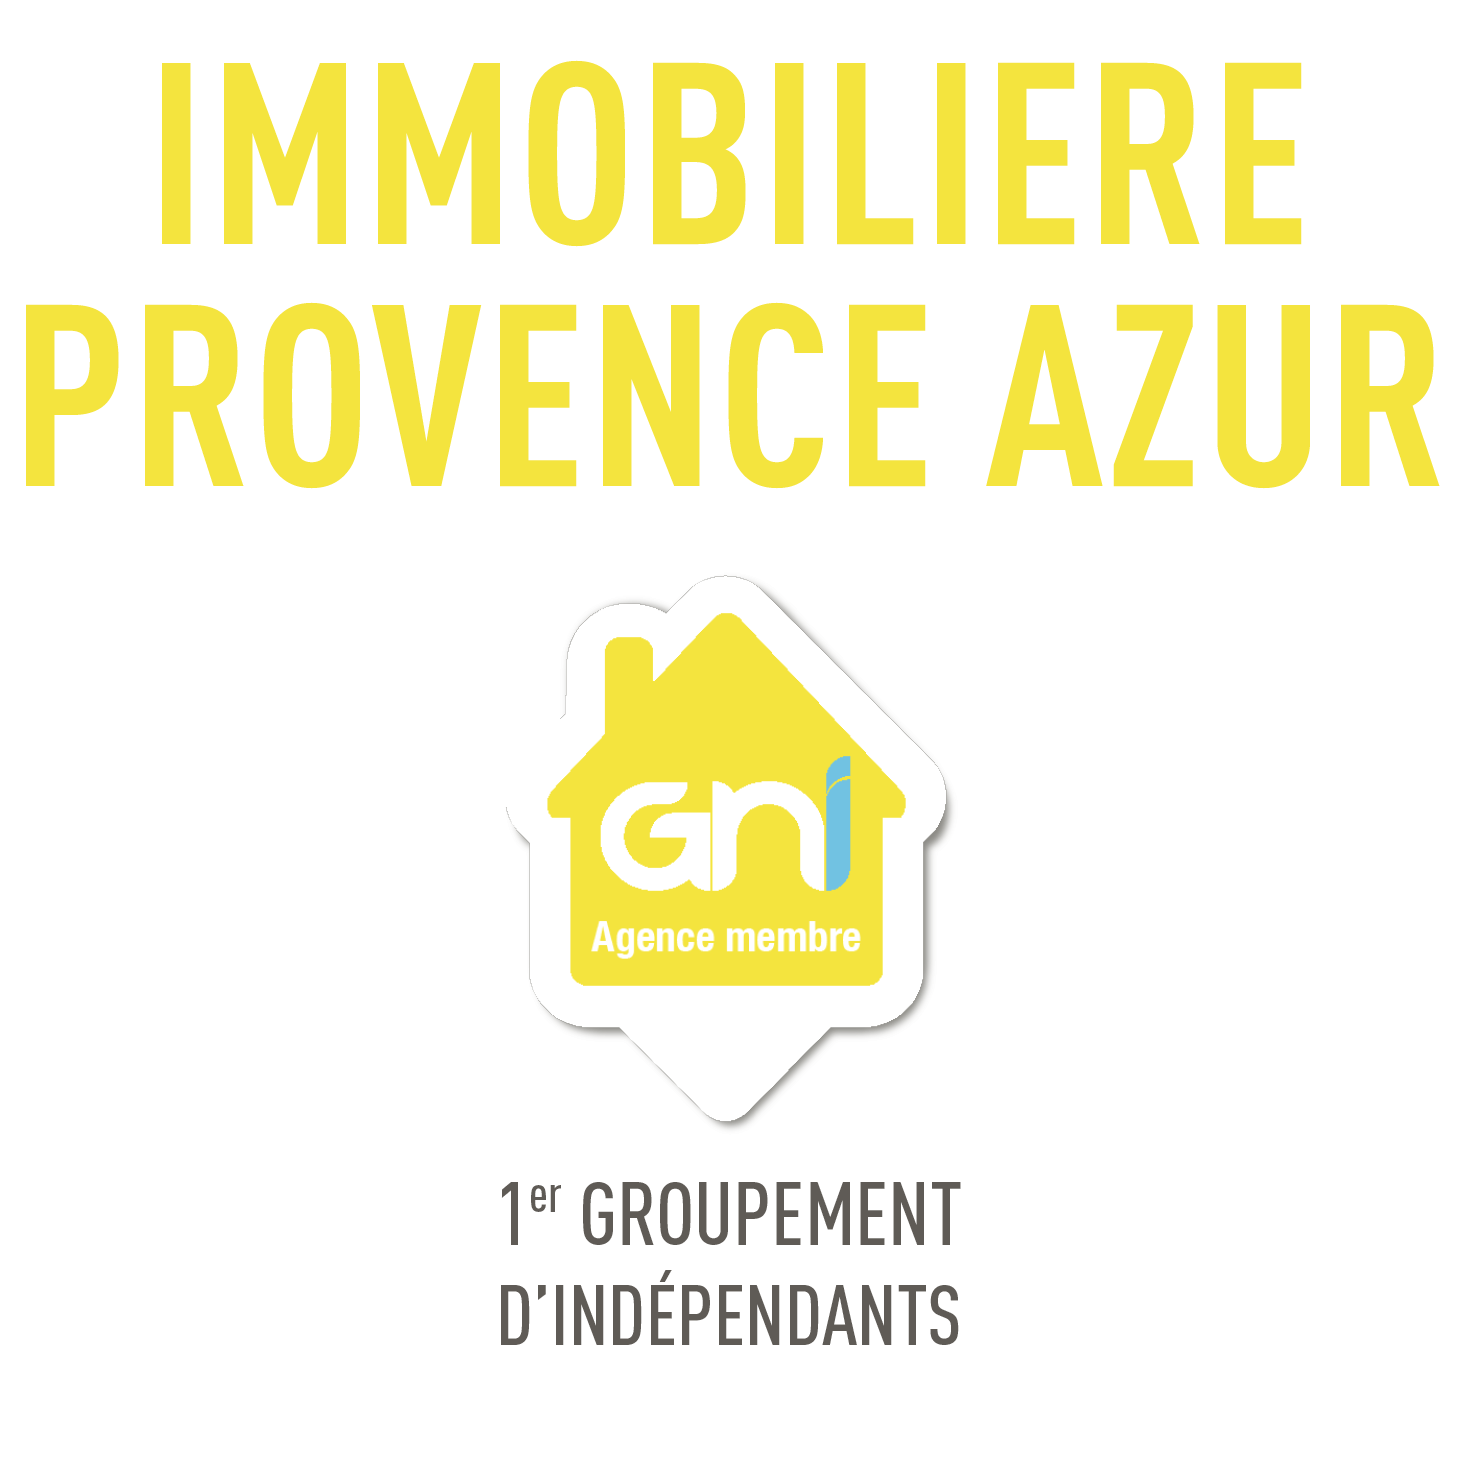 IMMOBILIERE PROVENCE AZUR